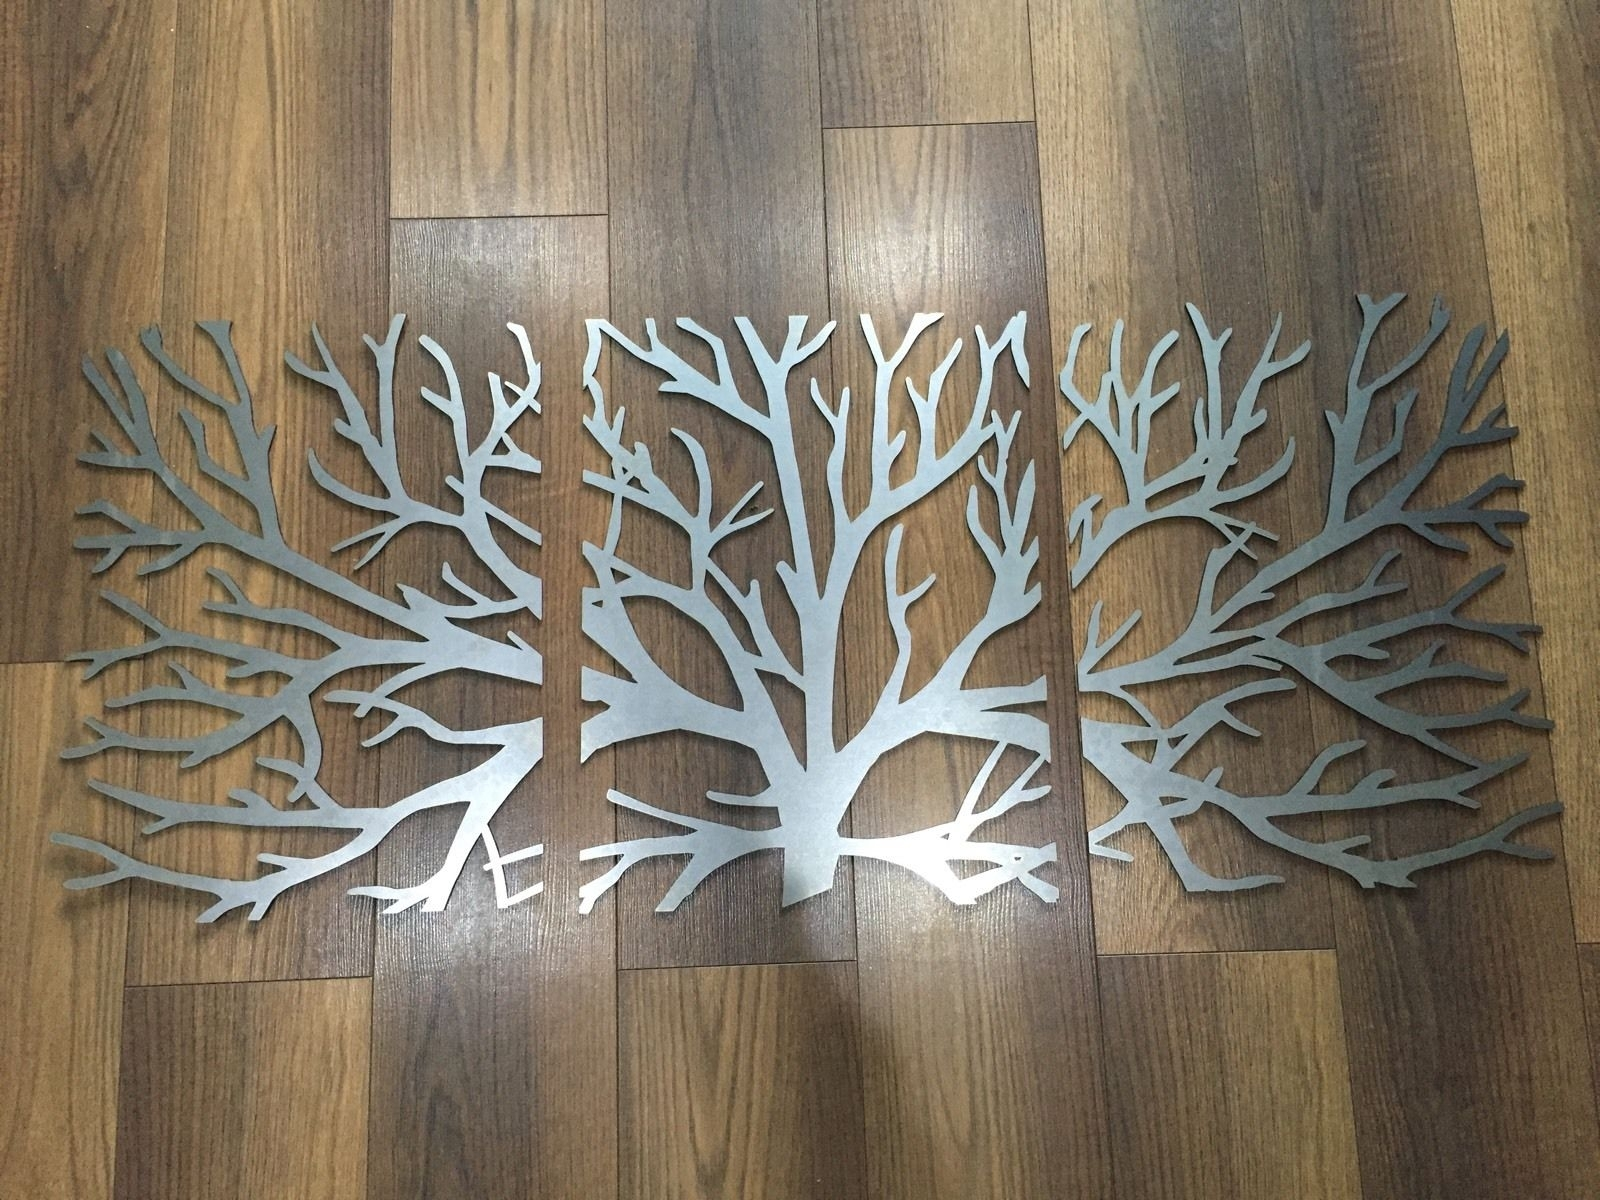 Wall Art Designs: Metal Wall Art Decor And Sculptures Wooden Metal Throughout Most Up To Date Abstract Leaf Metal Wall Art (View 18 of 20)